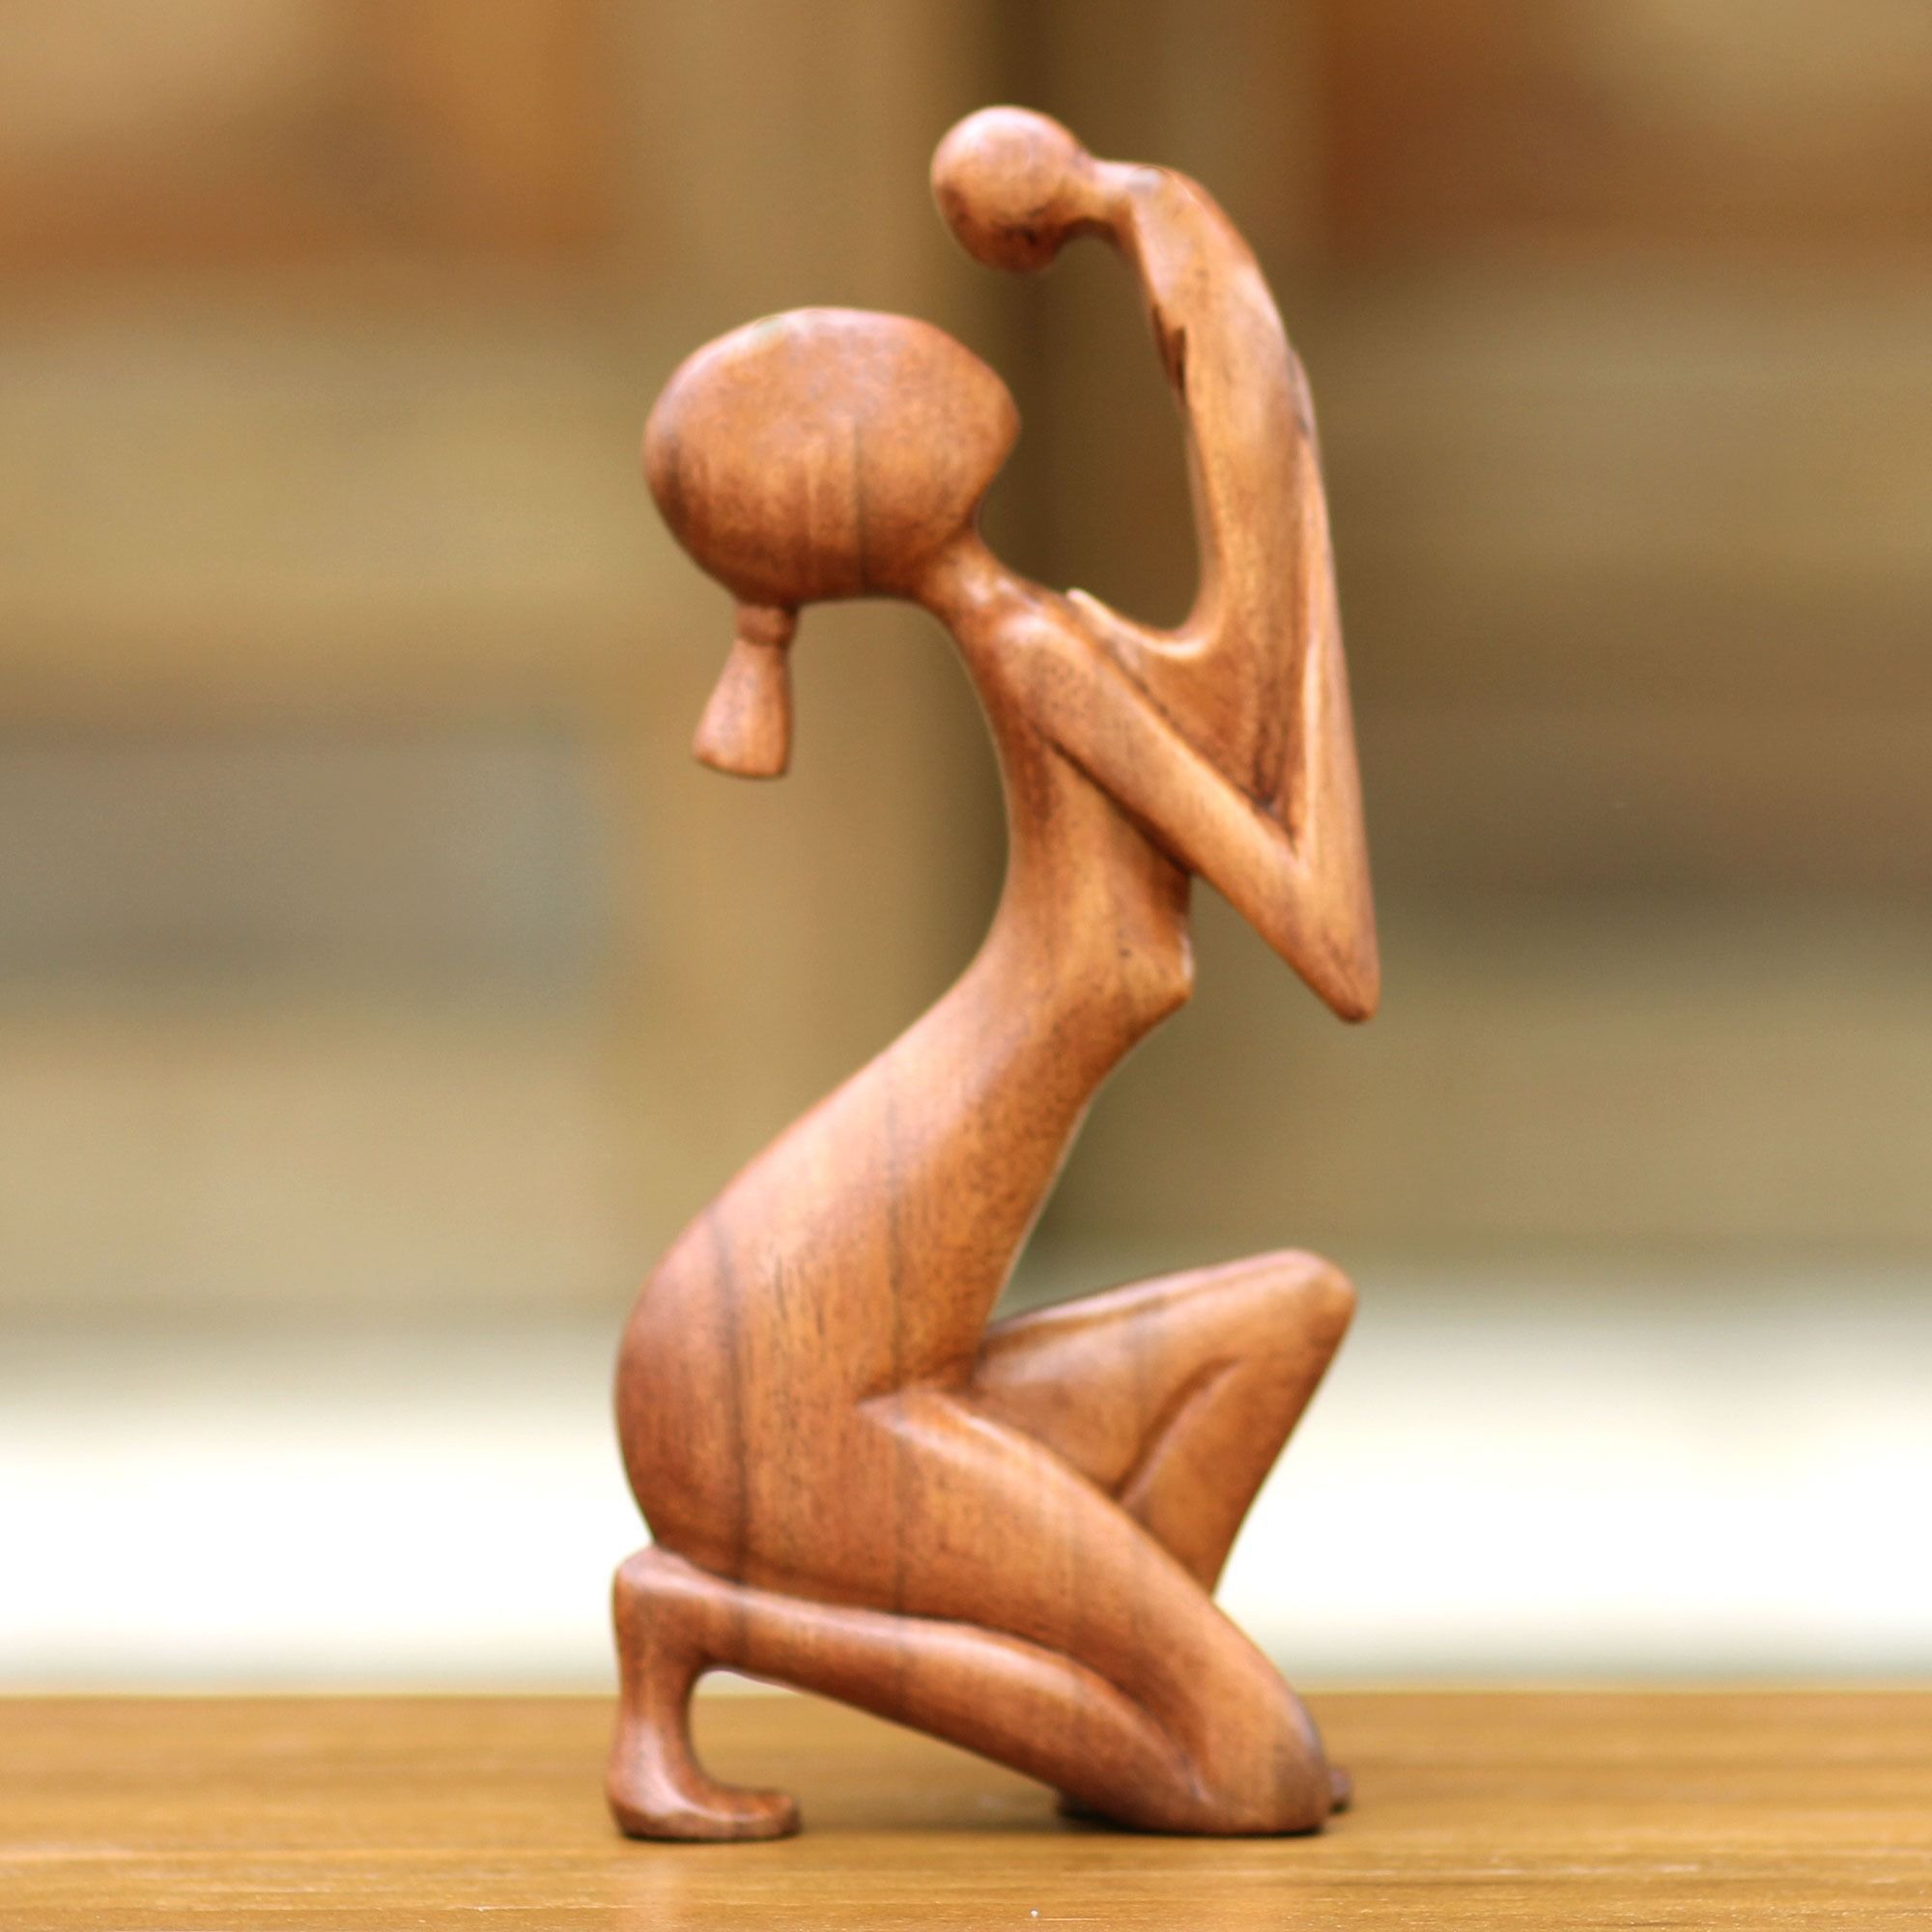 Wood moment of tenderness sculpture handmade in